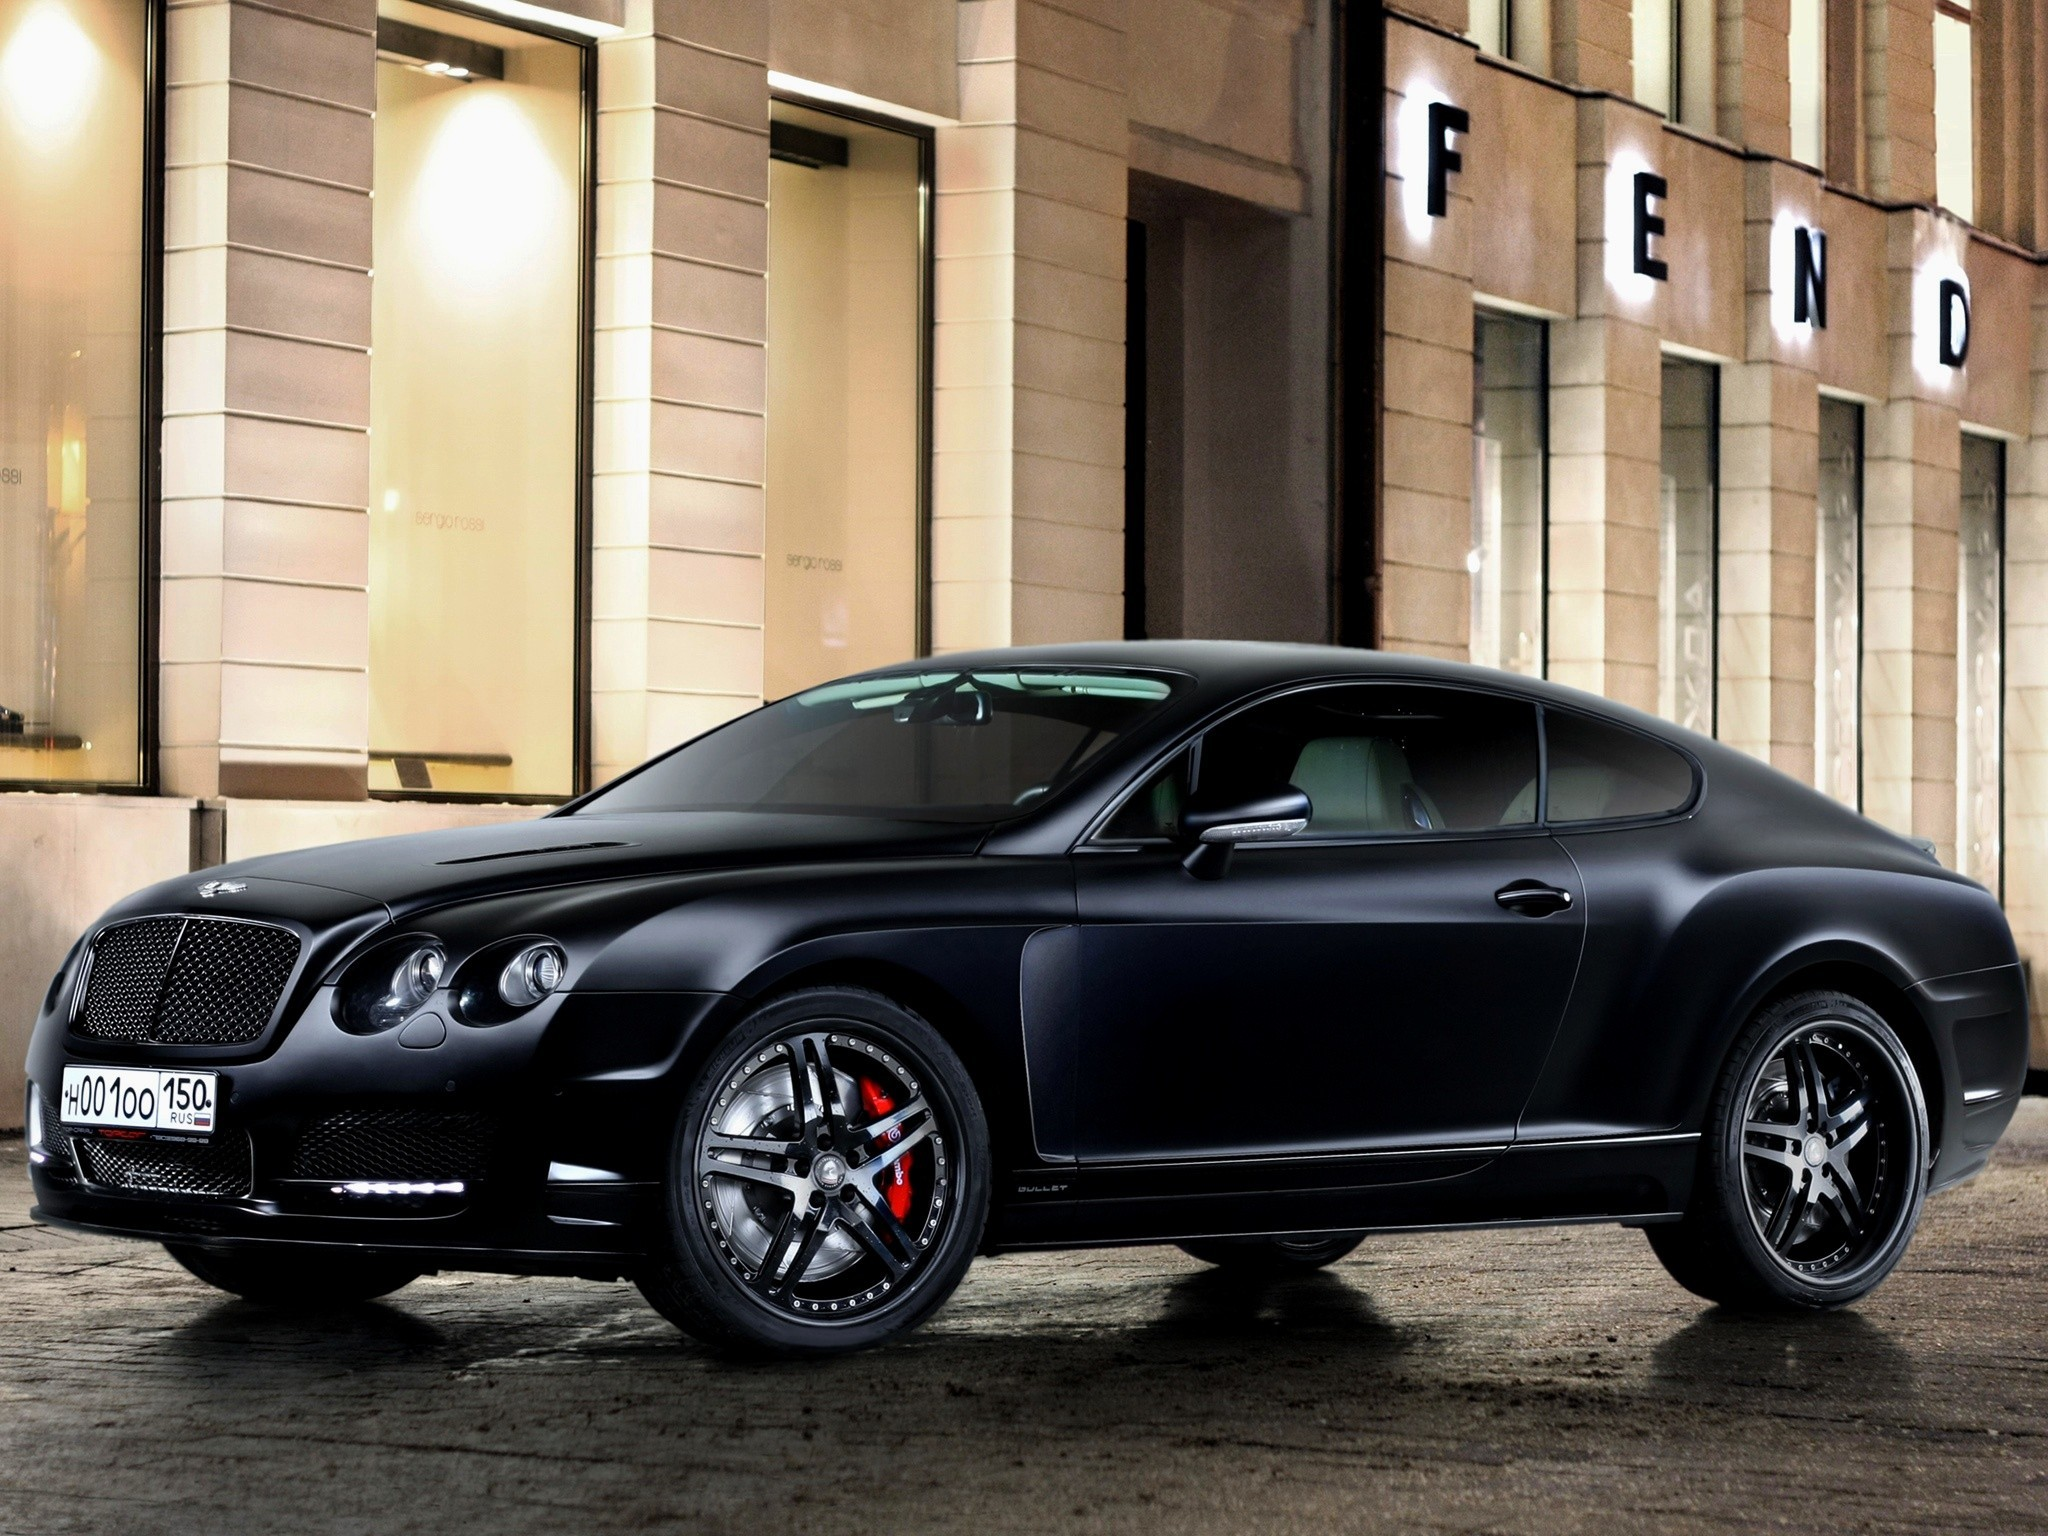 black dark cars wheels HD Wallpaper